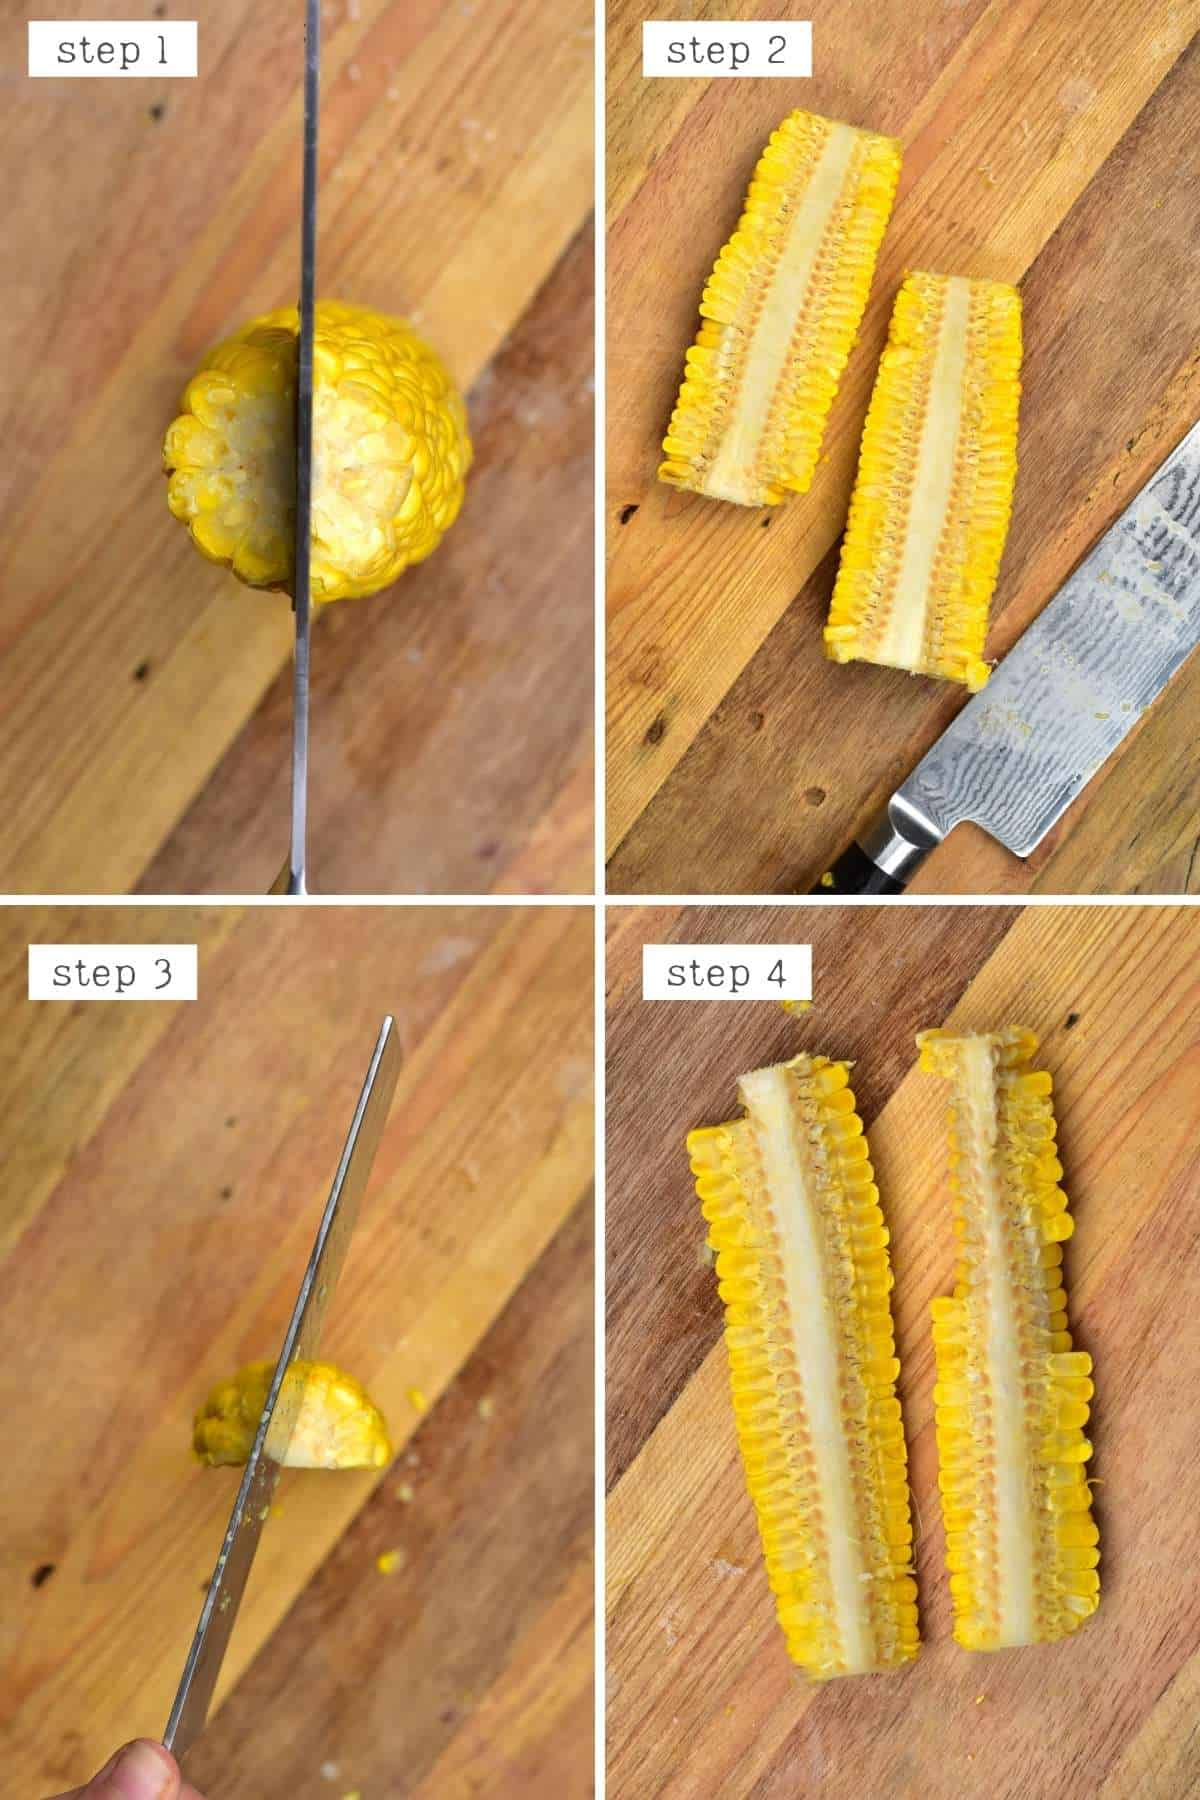 Steps for cutting corn on a cob